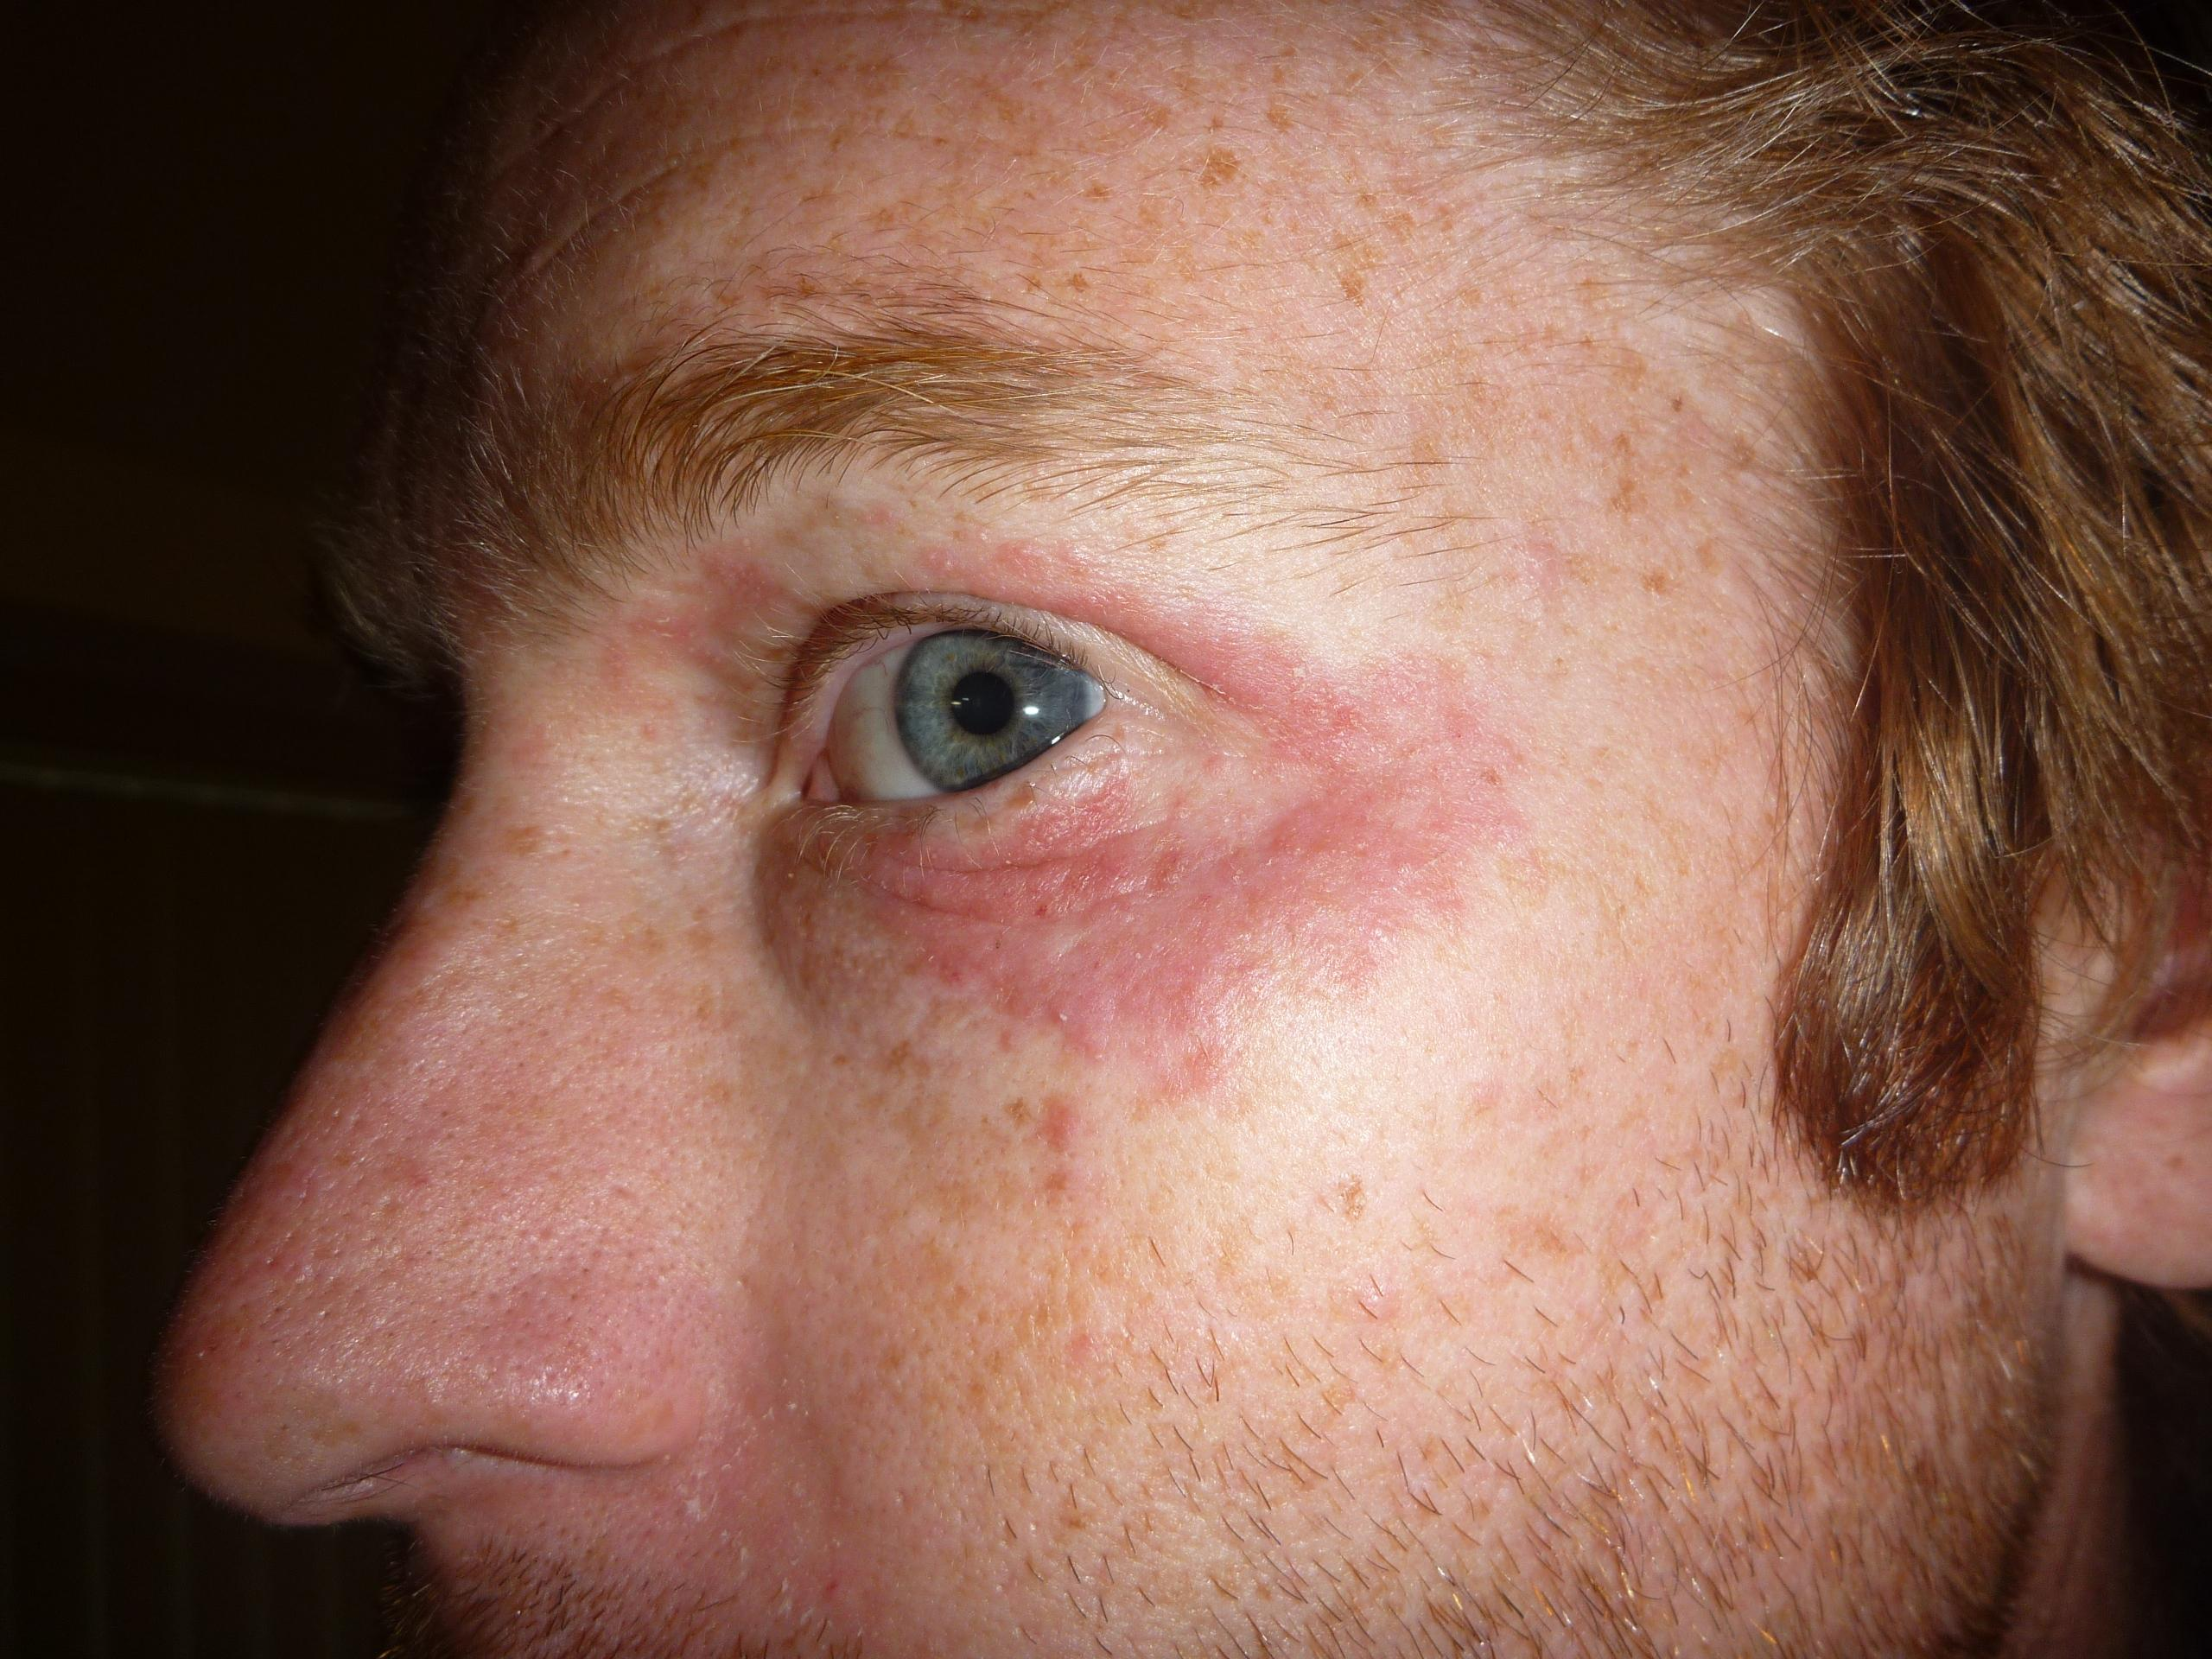 rash around eyes - Dermatology - MedHelp